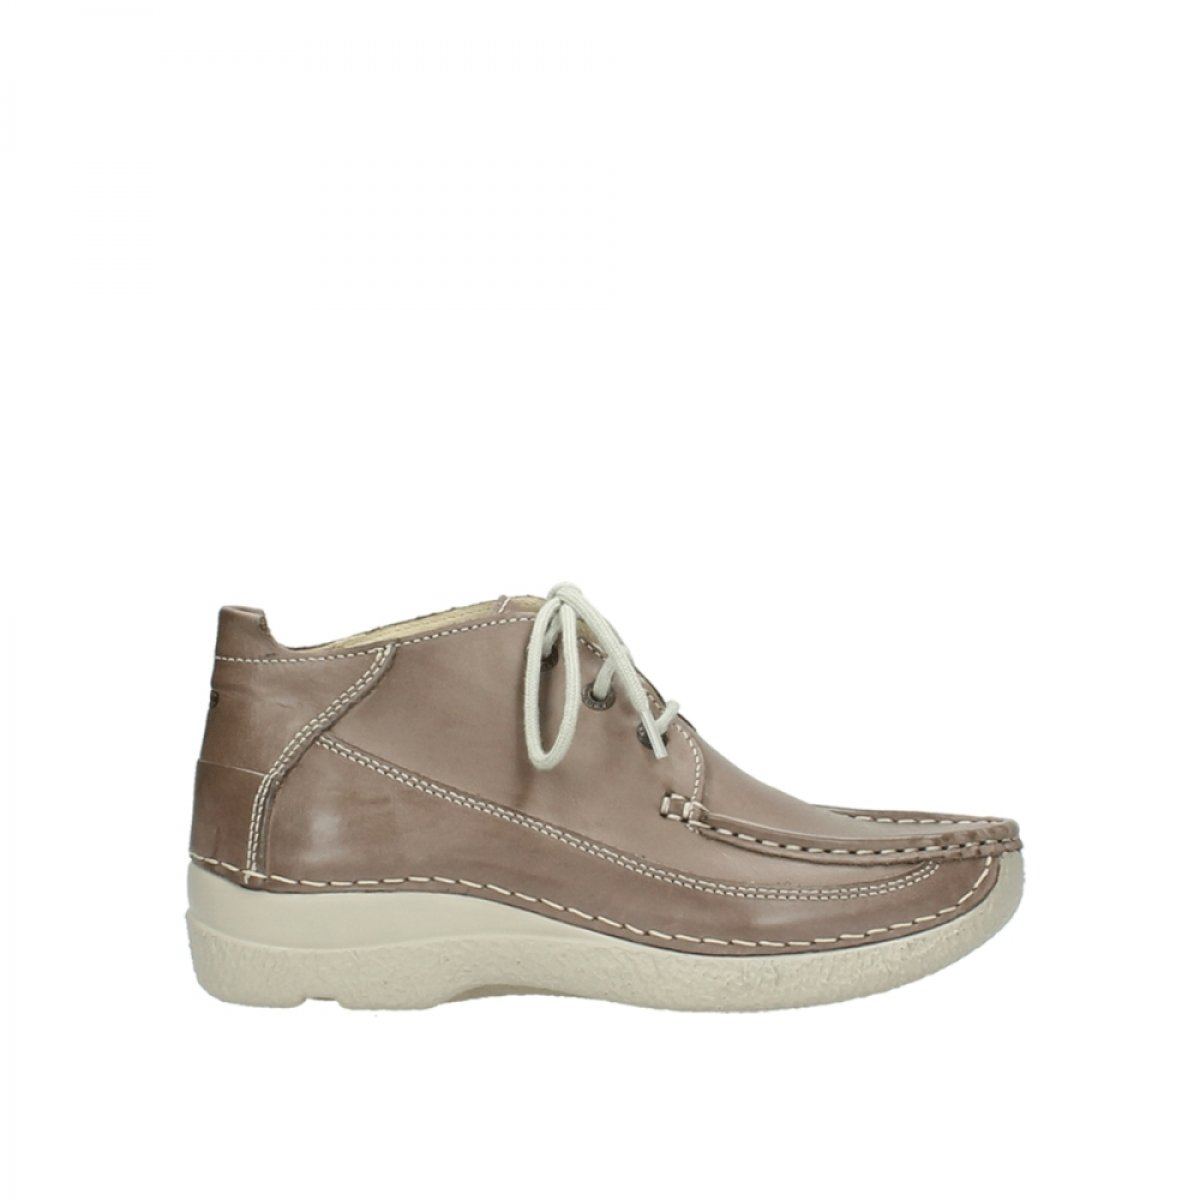 Wolky Confort 06200 Chaussures 18158 à lacets 06200 Corde Corde Rouleau MOC 30150 Taupe Leather 3870e3c - deadsea.space